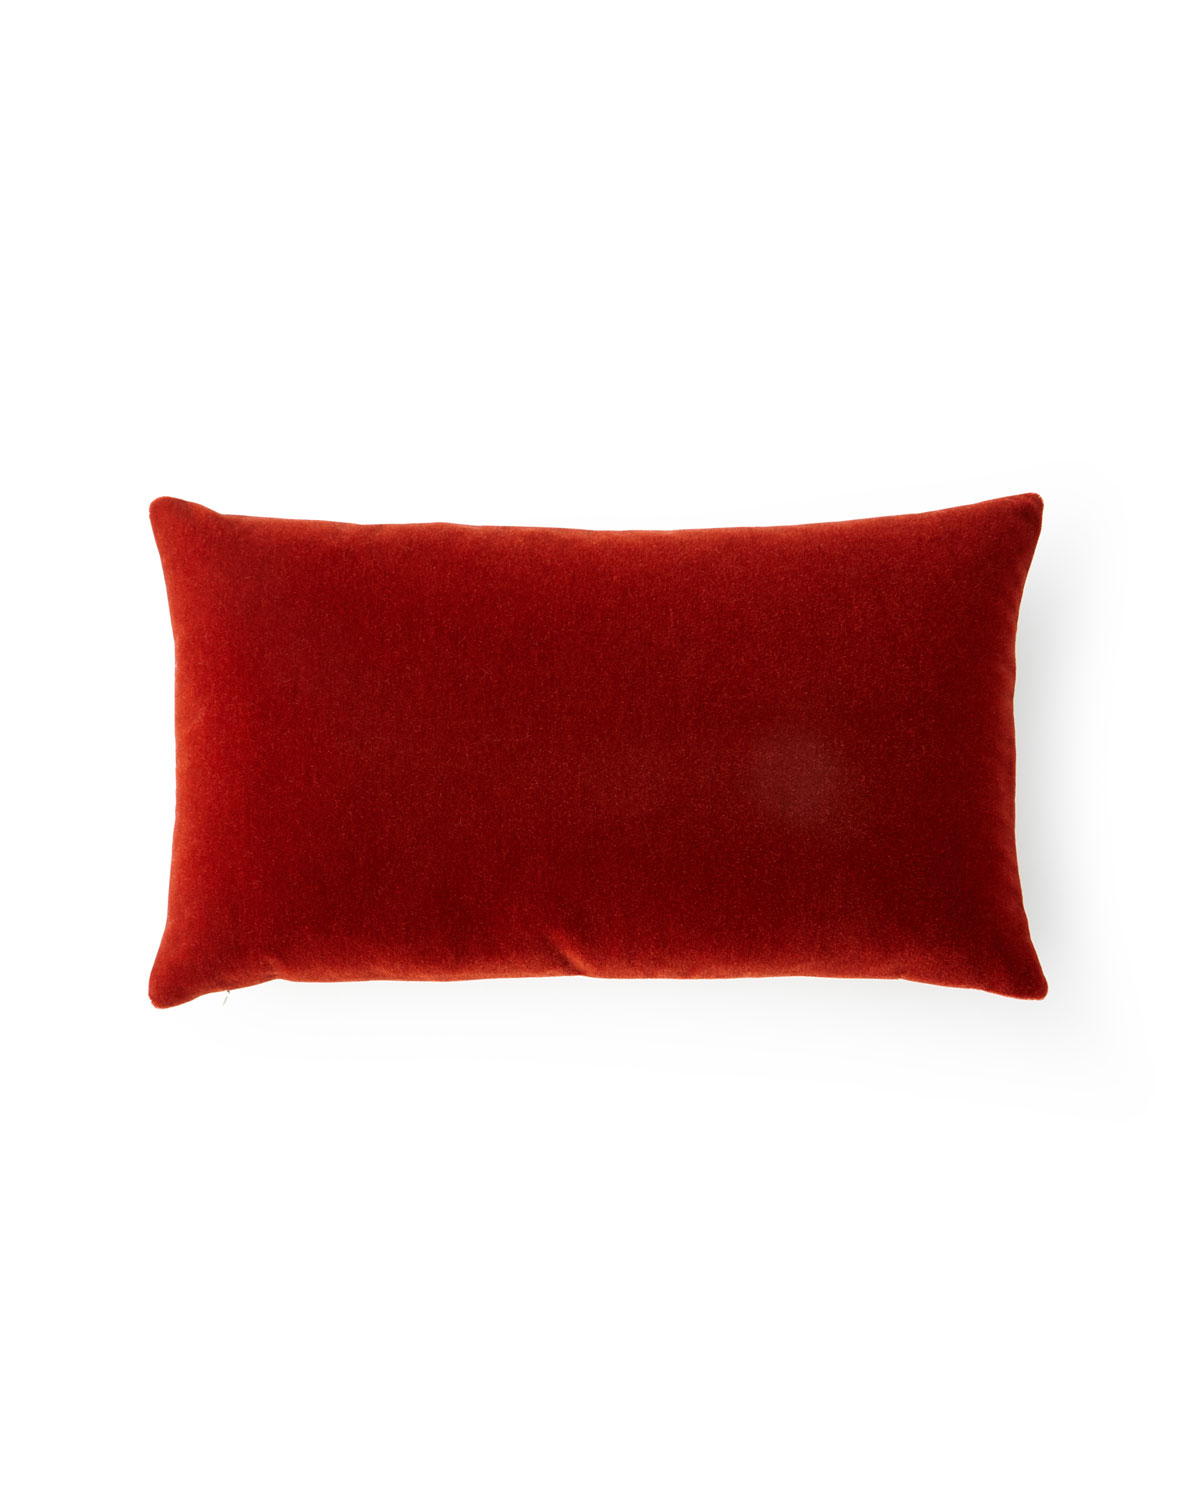 Eastern Accents Bach Claypot Decorative Pillow